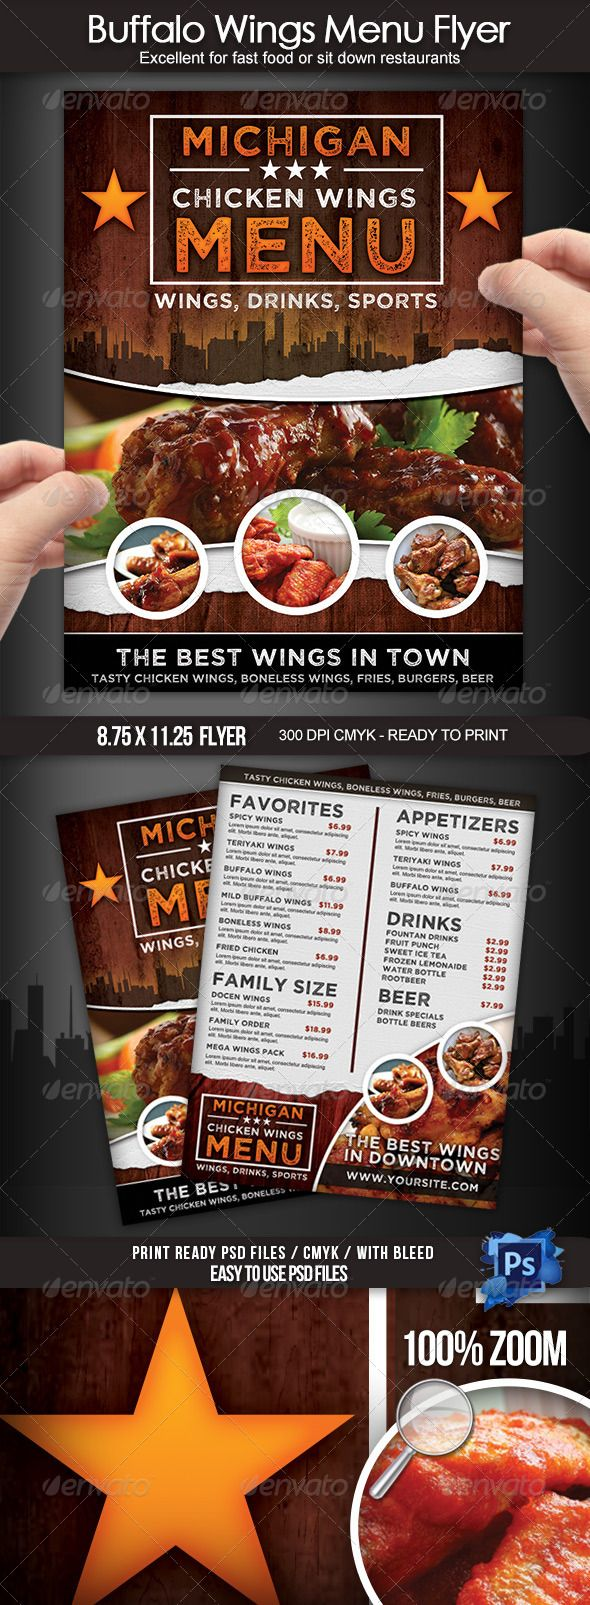 Buffalo Wings Menu Flyer - Food Menus Print Templates